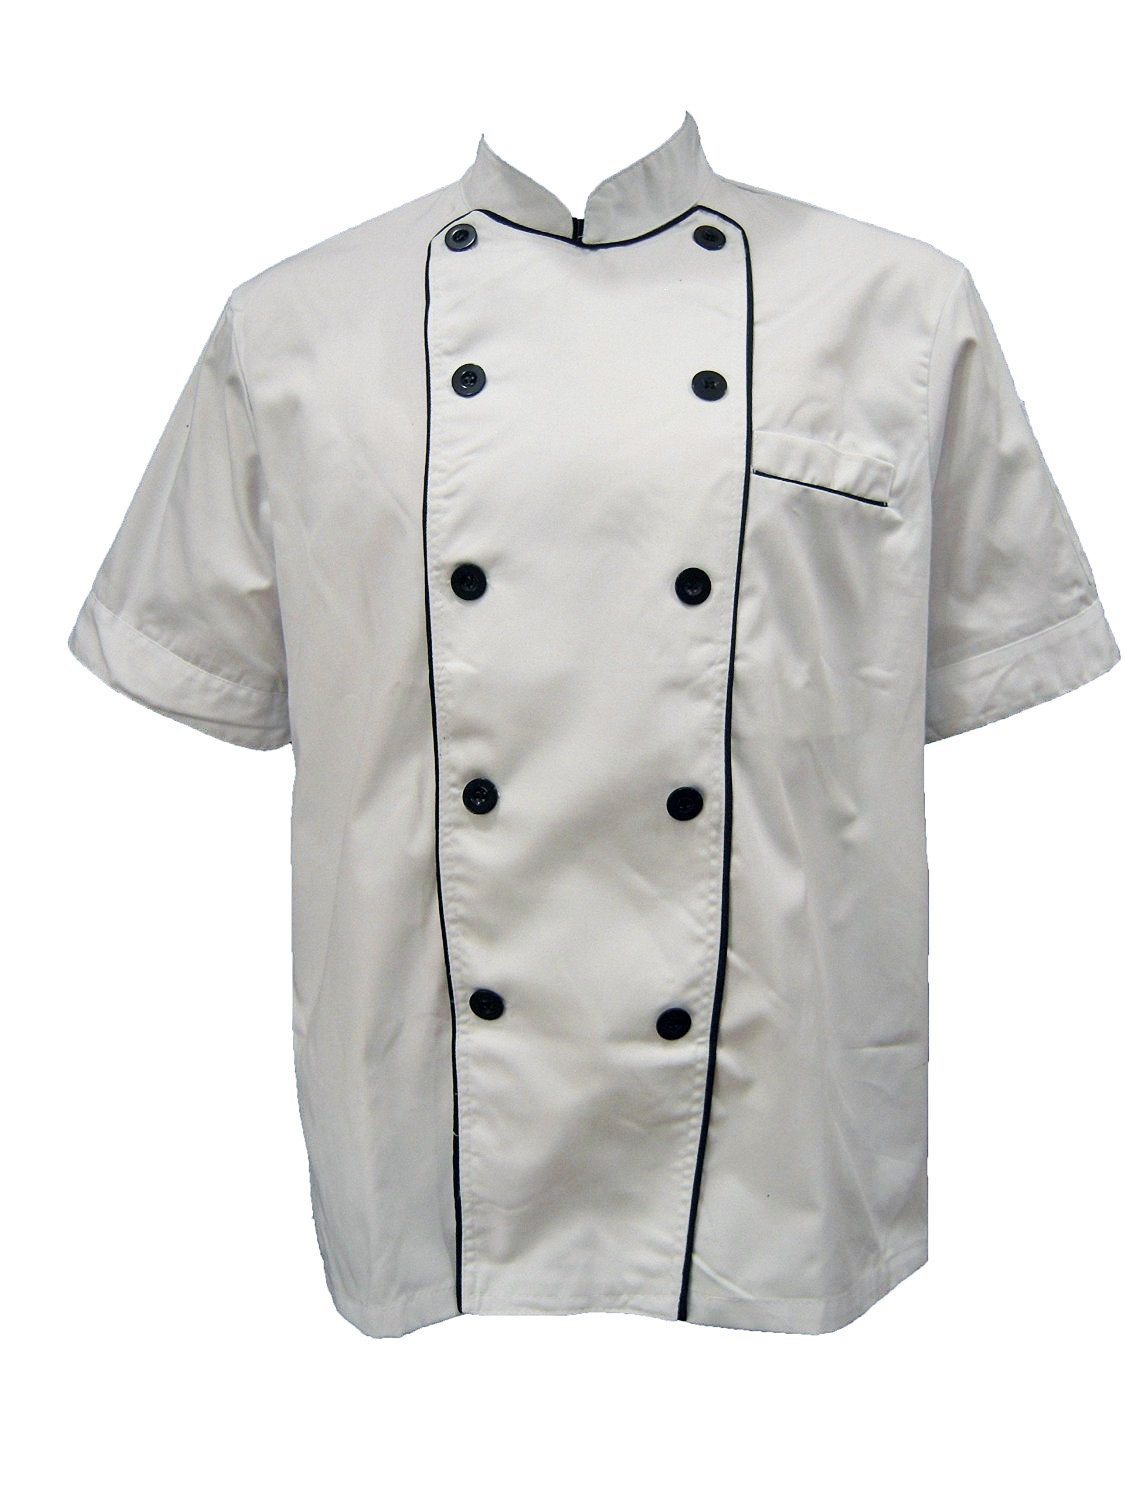 Chef Jacket with Black Lining (Short Sleeves) Size 44, X-Large